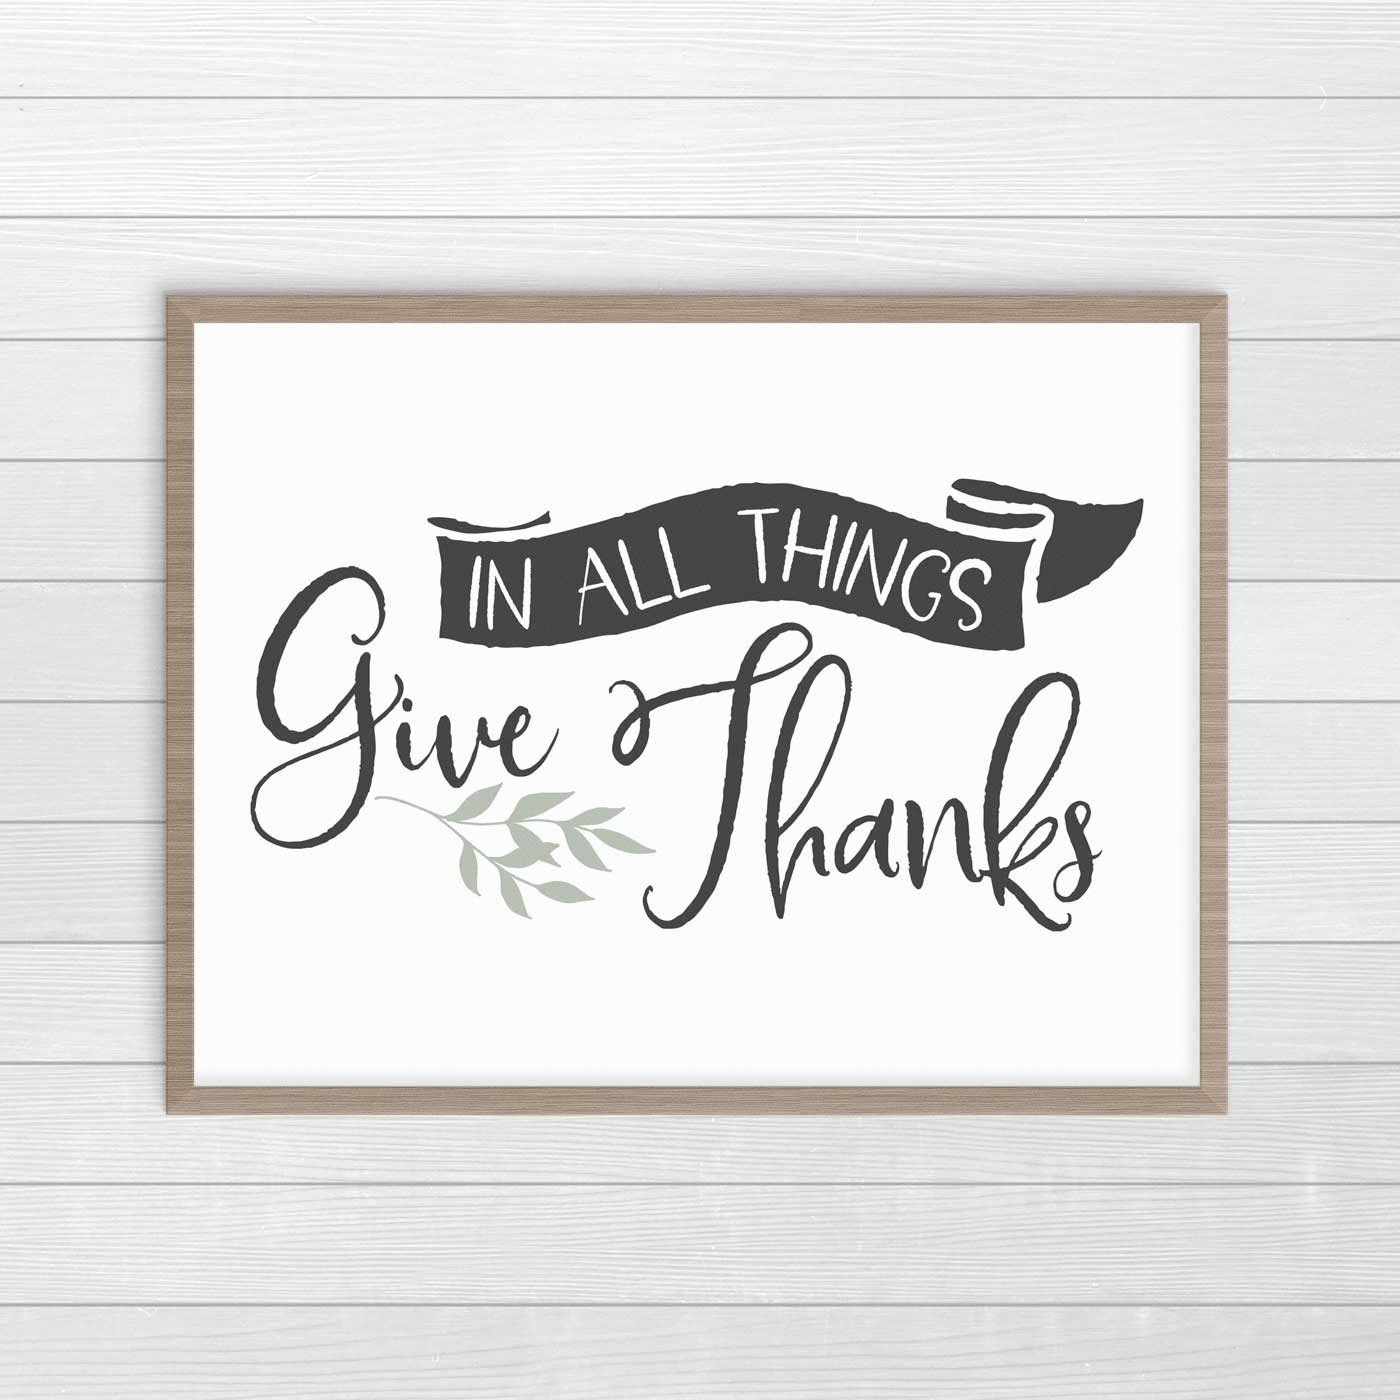 Give Thanks in All Things print. Neutral farmhouse decor printable. #FarmhouseDecor #ThanksgivingDecor #FreePrintables